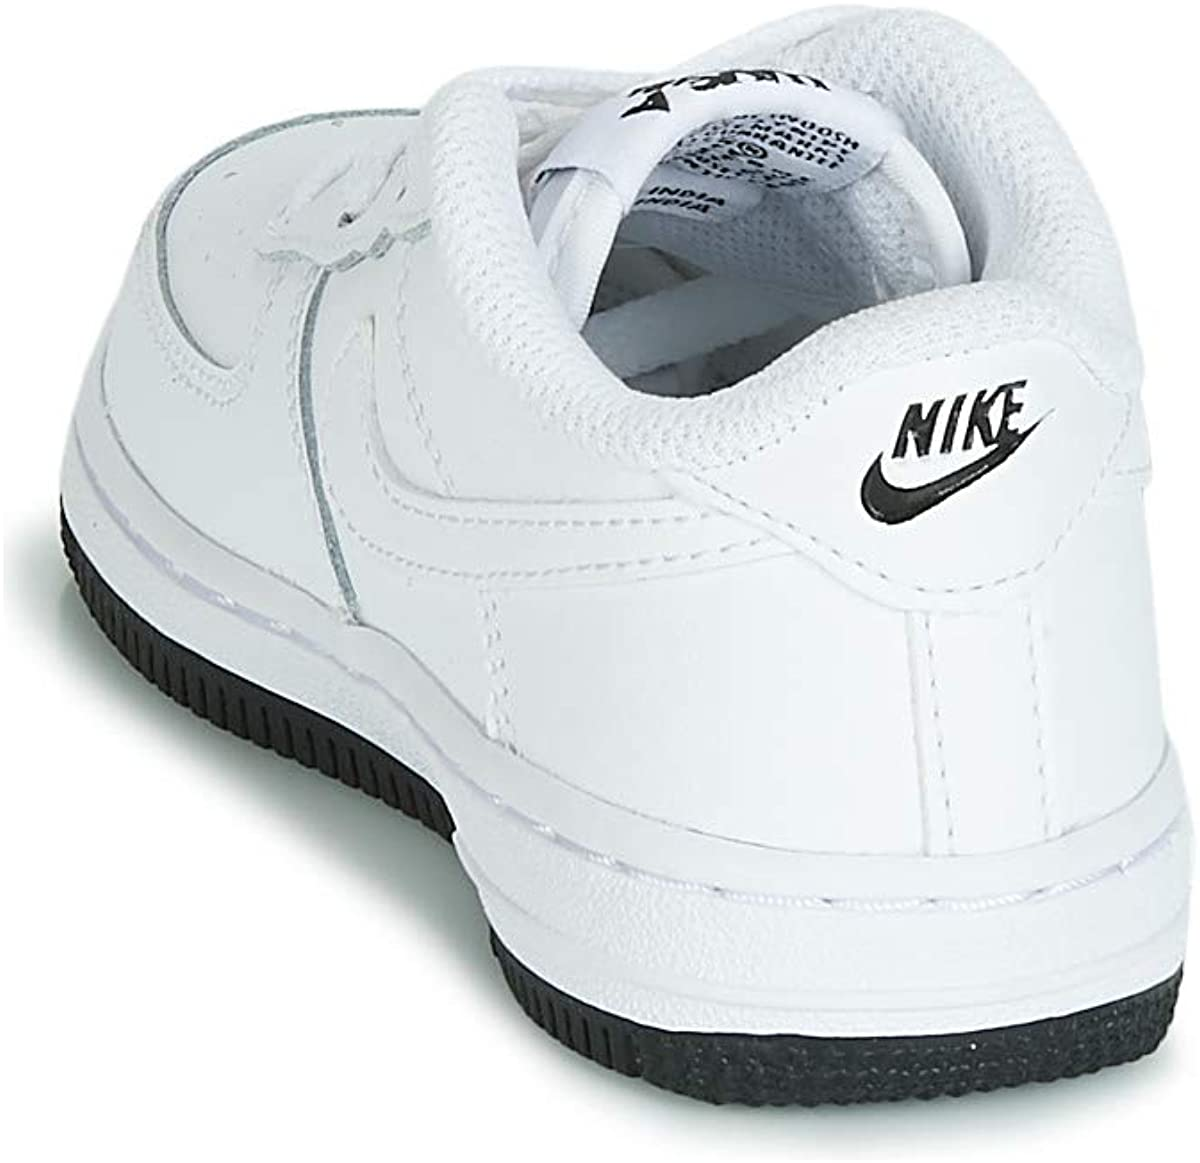 Nike AIR Force 1 LV8 2 Baskets Mode Enfant BlancNoir